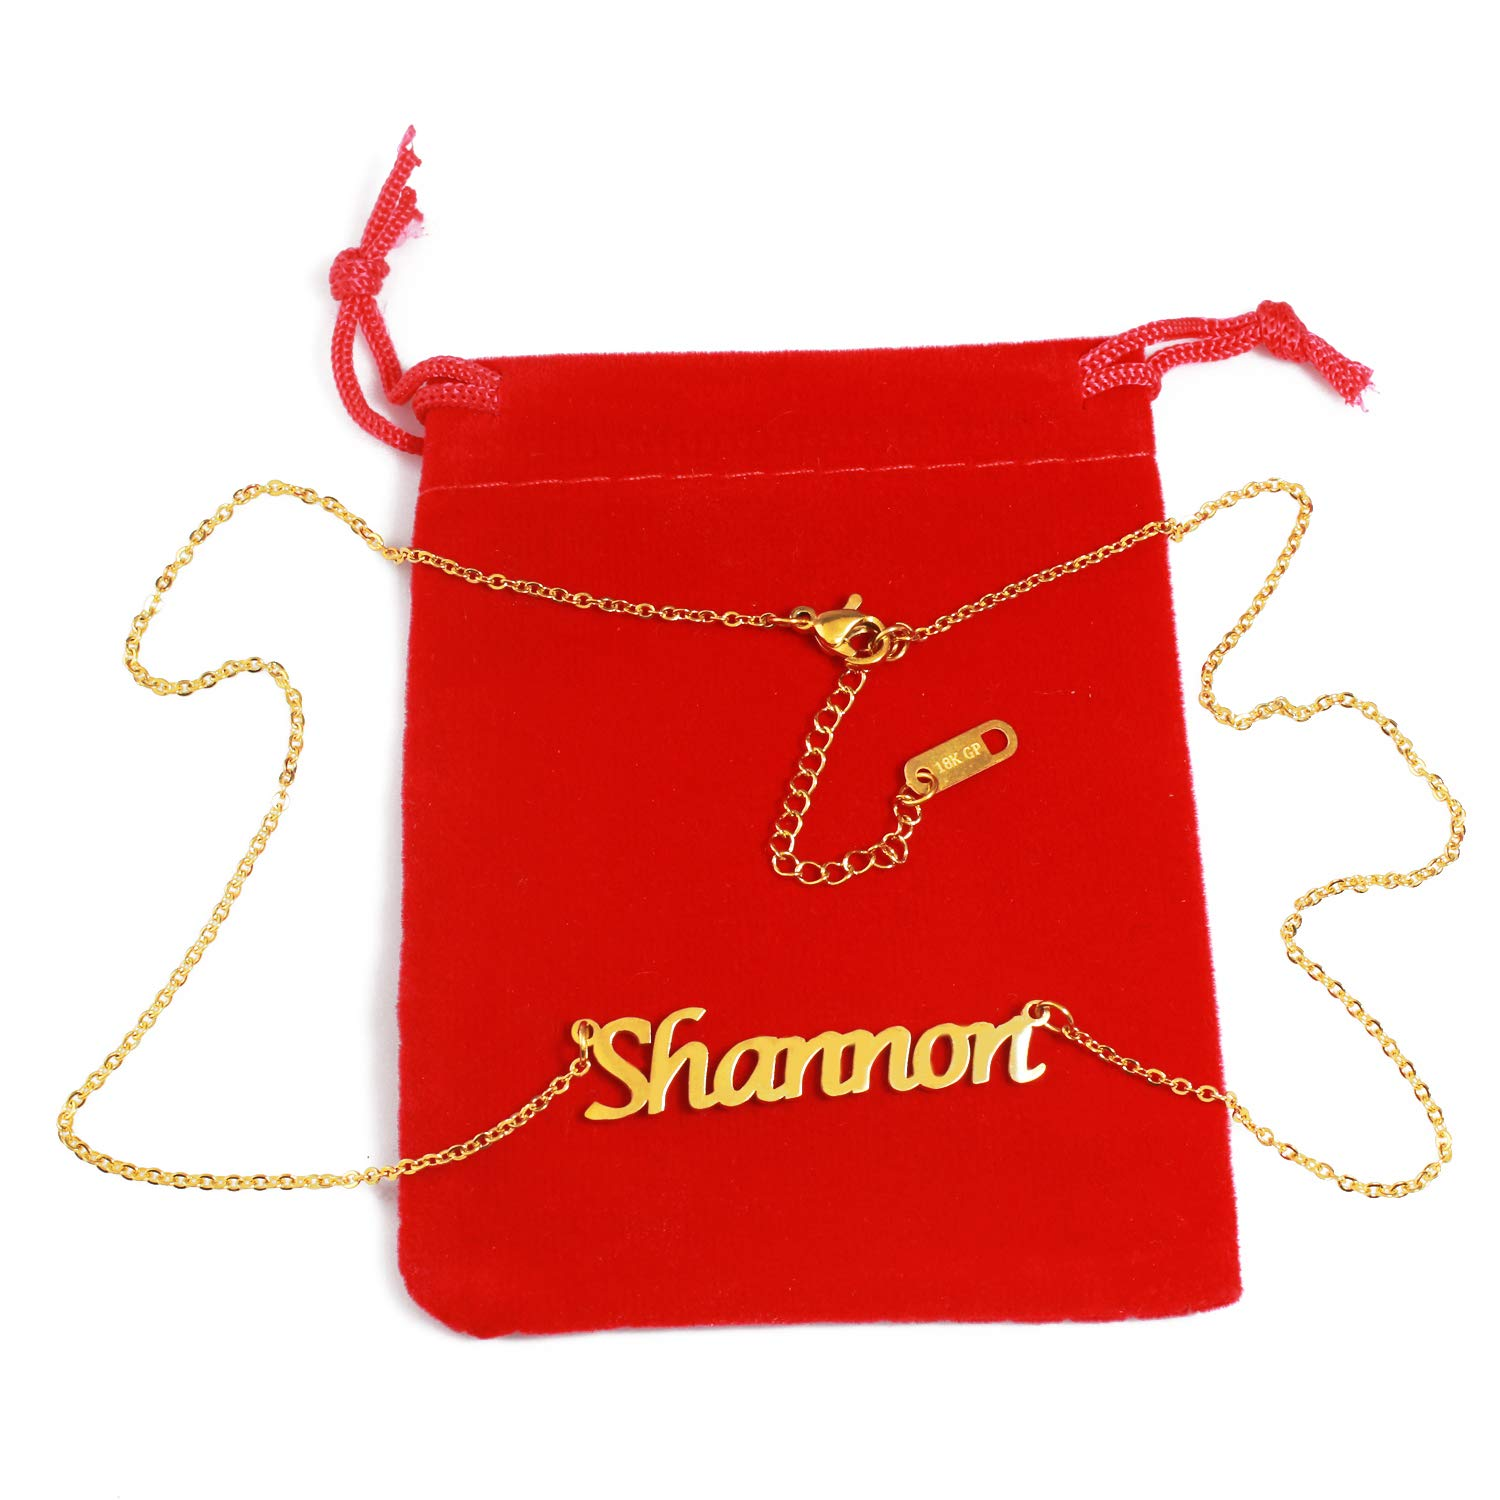 18ct Gold Plated Zacria Shannon Name Necklace